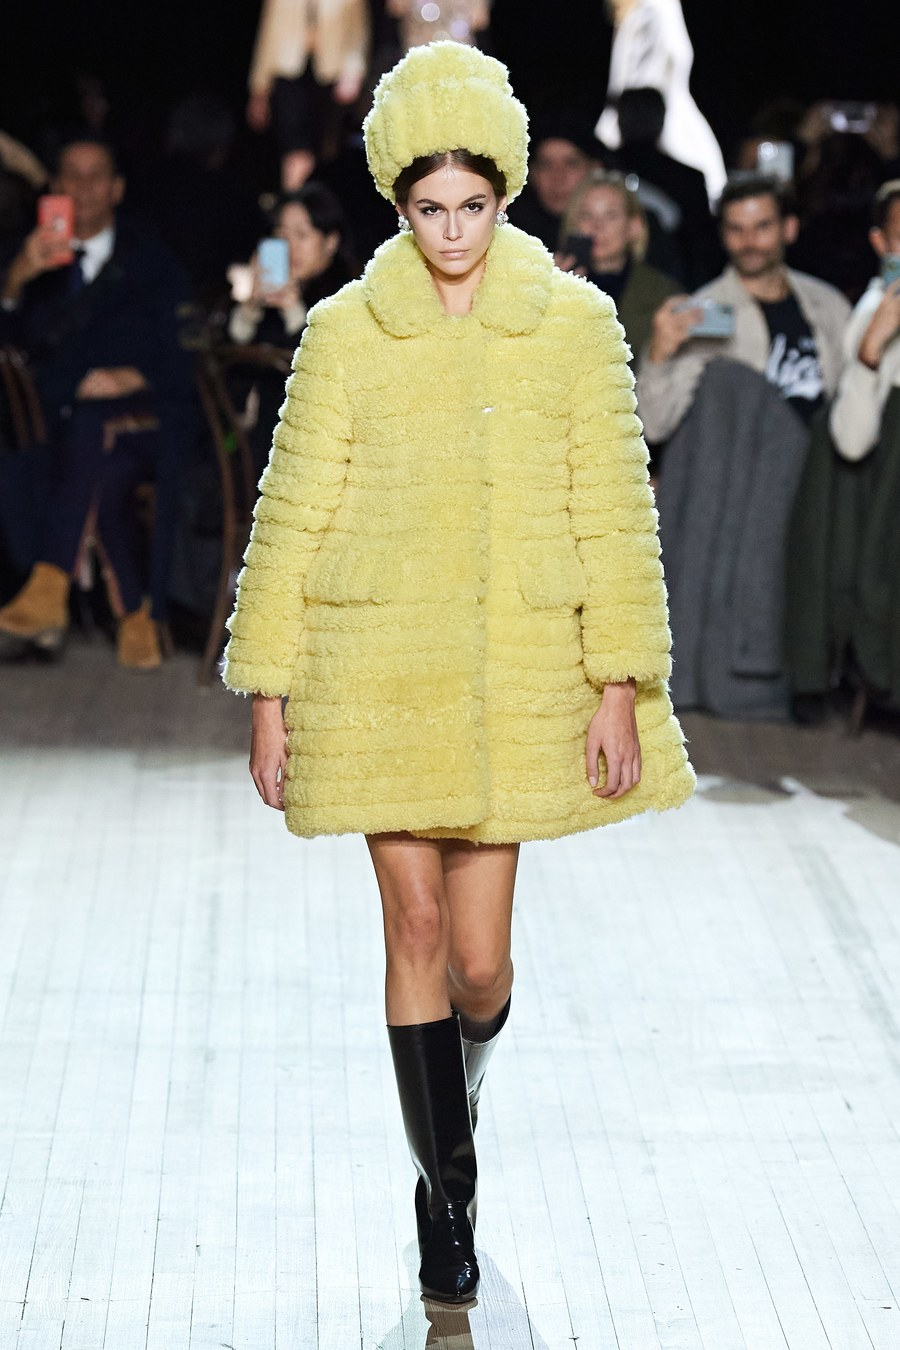 Kaia Gerber walking for Marc Jacobs FW20 fashion show during NYFW